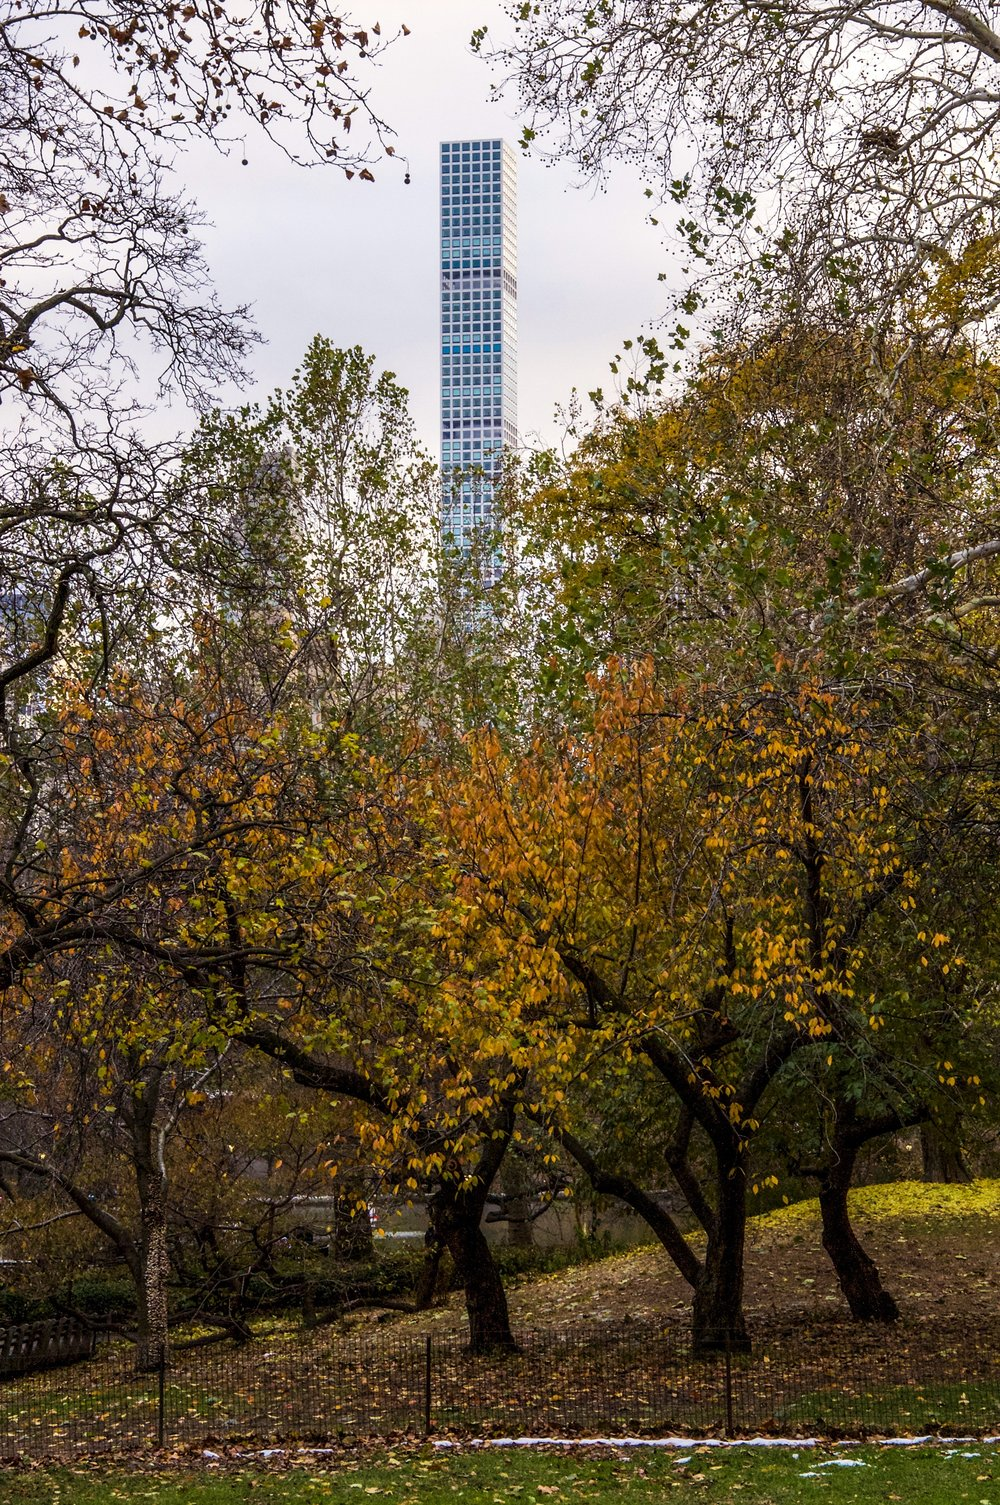 @ 432_Park_Avenue_Central Park_autumn trees_11.17.18_Photo © 2018 Joseph Kellard:kellardmedia.com.jpg